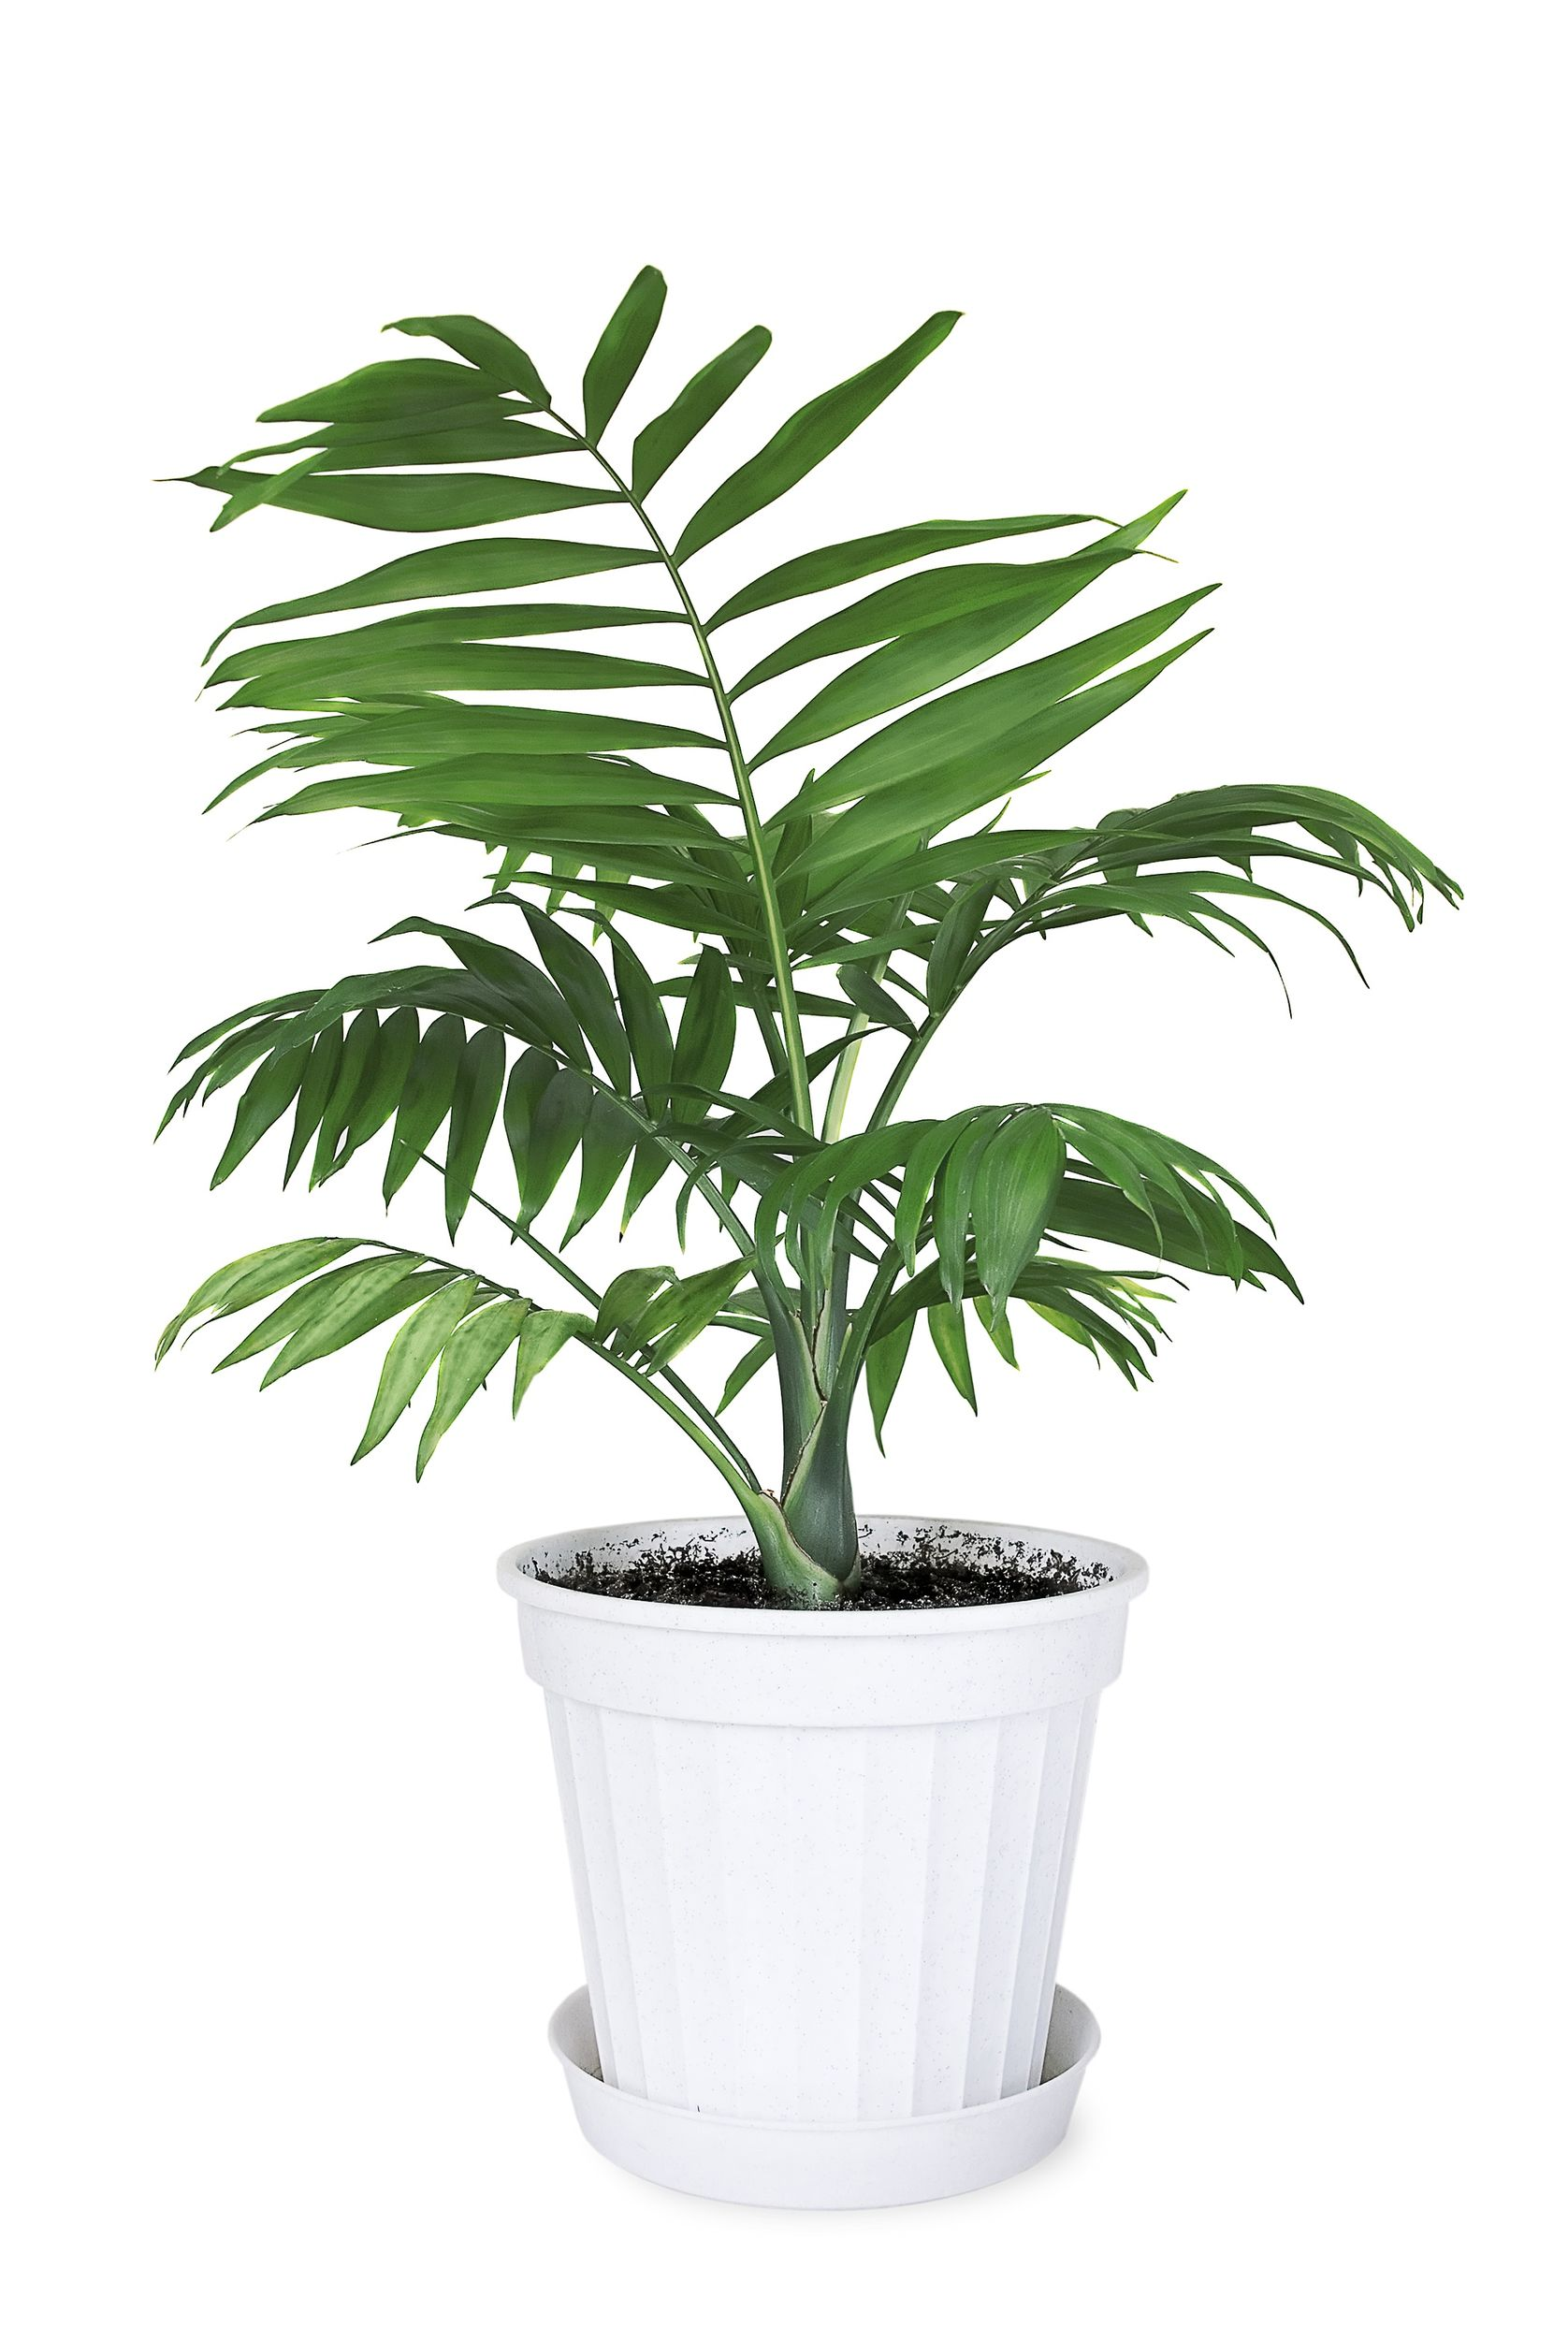 Parlor Palm (Chamaedorea Elegans) can grow in any condition and requires minimal care.